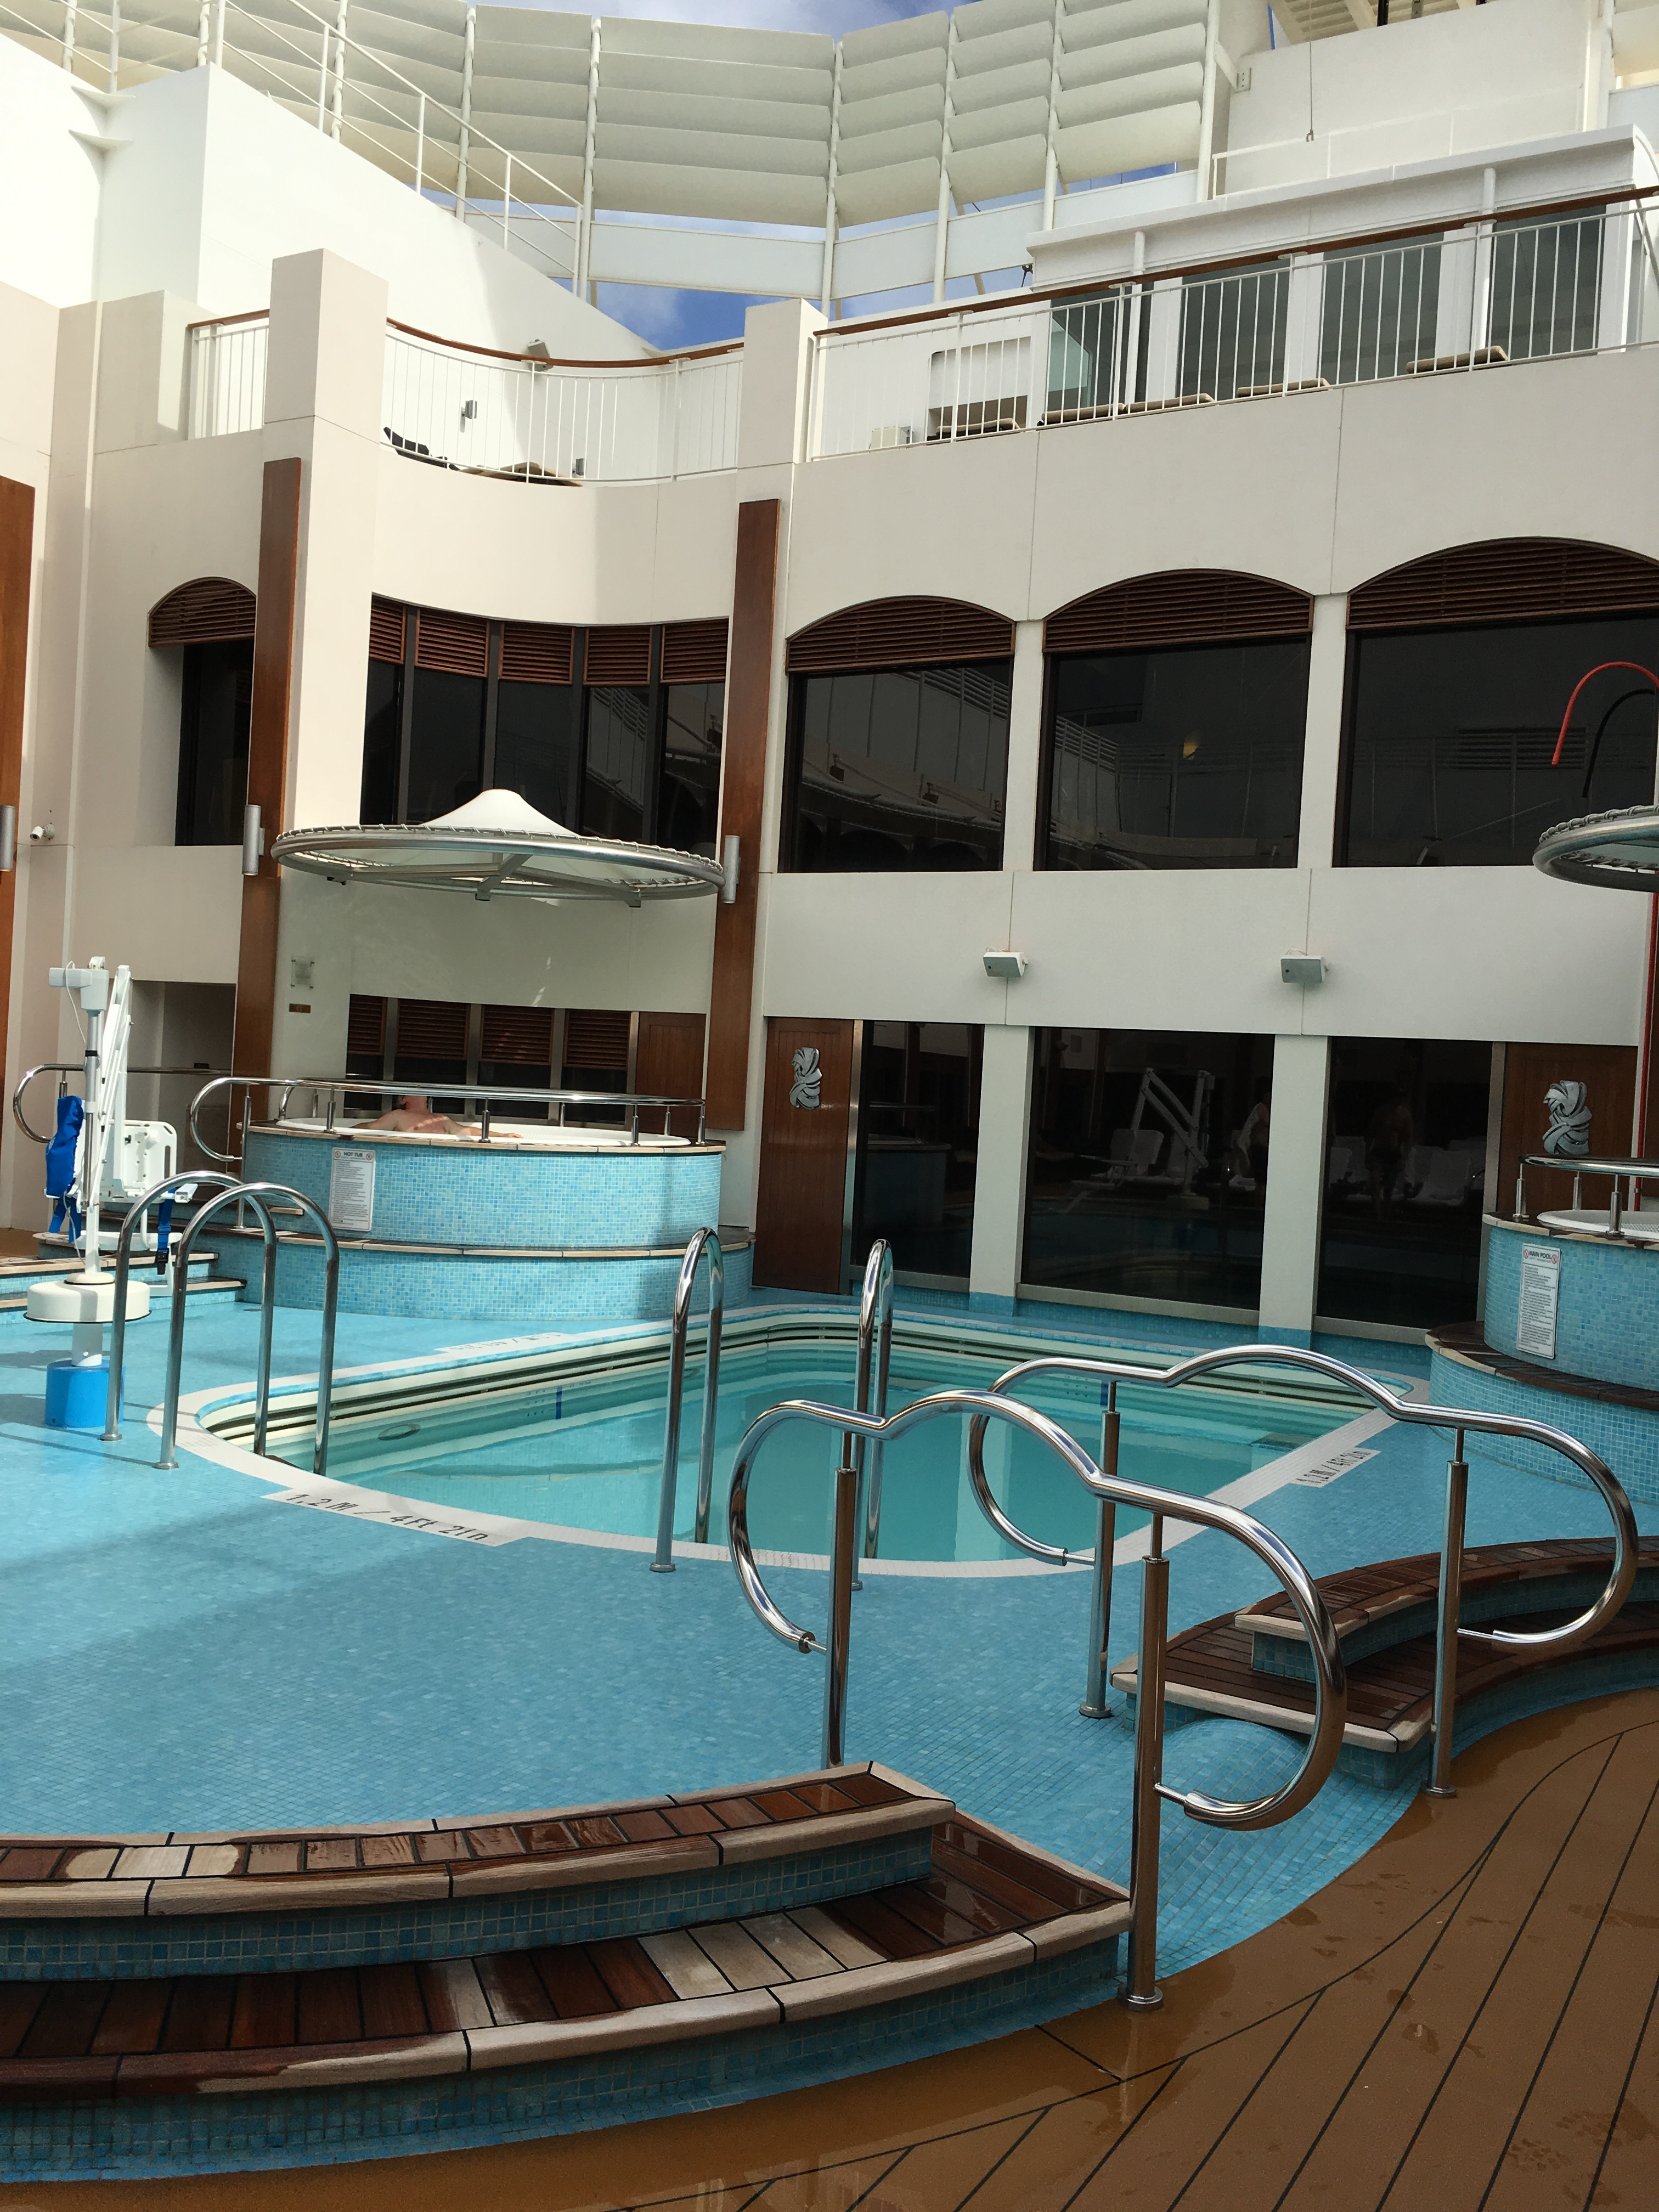 Wonderful Way To Relax Norwegian Epic Cruise Review